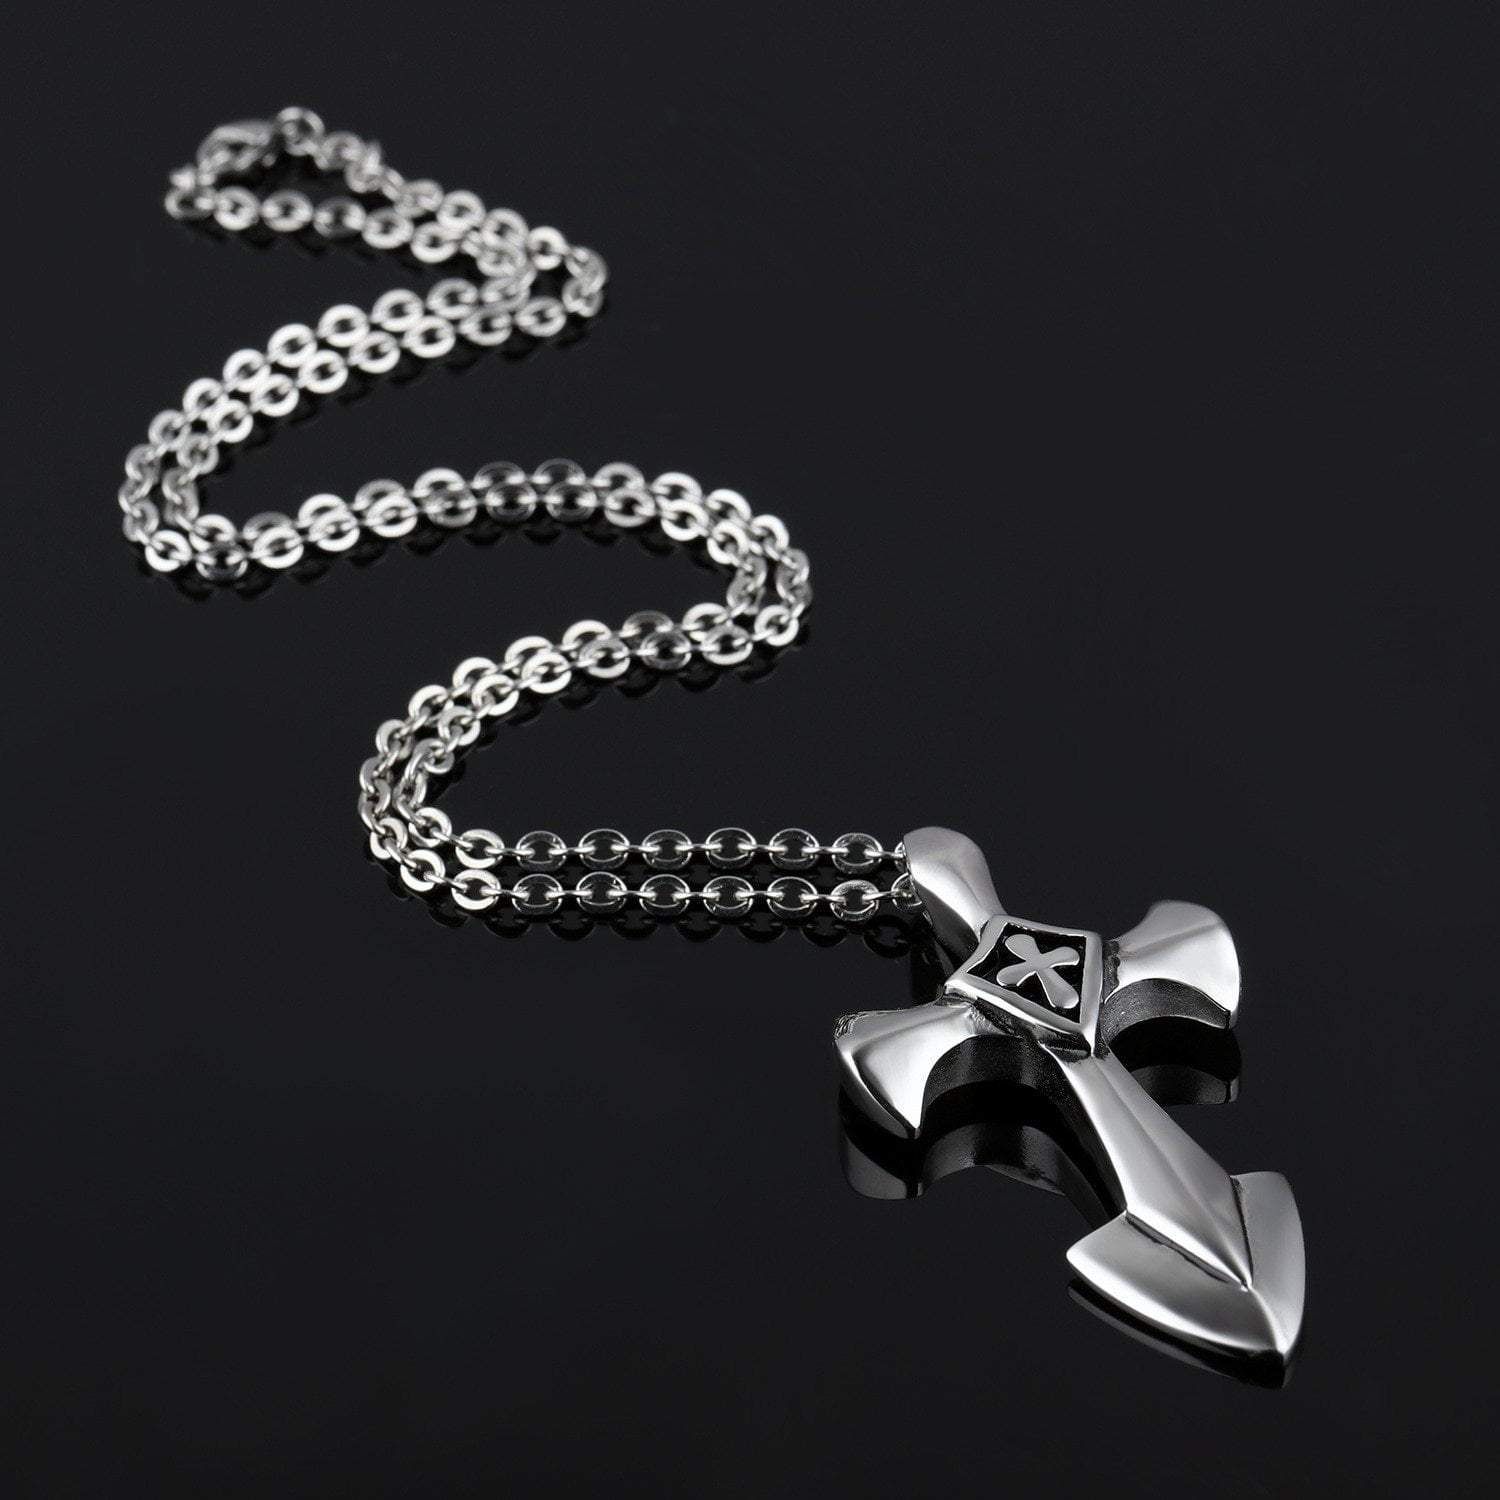 Necklace Stainless Steel Templar Cross Pendant